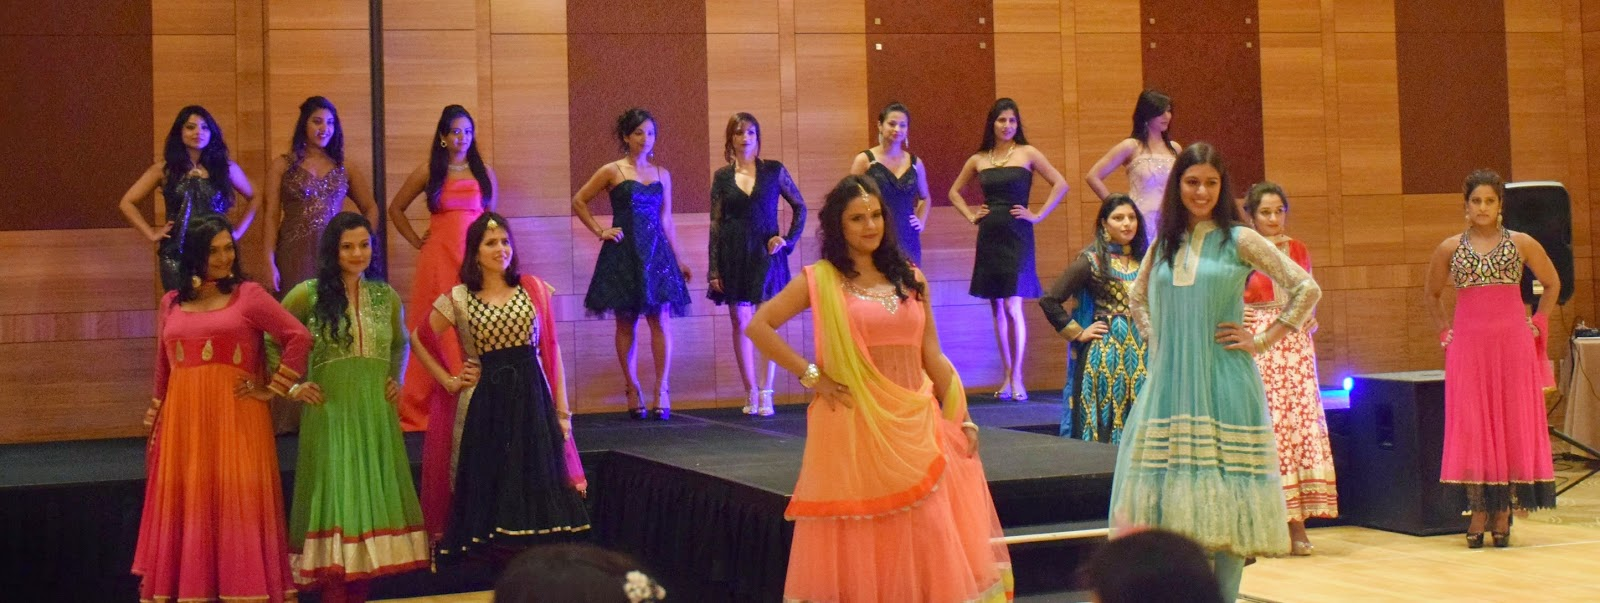 Seattle fashion shows, Seattle desi events, Hyatt Fashion show, fashion trends for women of all ages, Ananya in a gown, Seattle Fashion Blogger, Indian ladies wearing different attire, Indo-Western Fusion